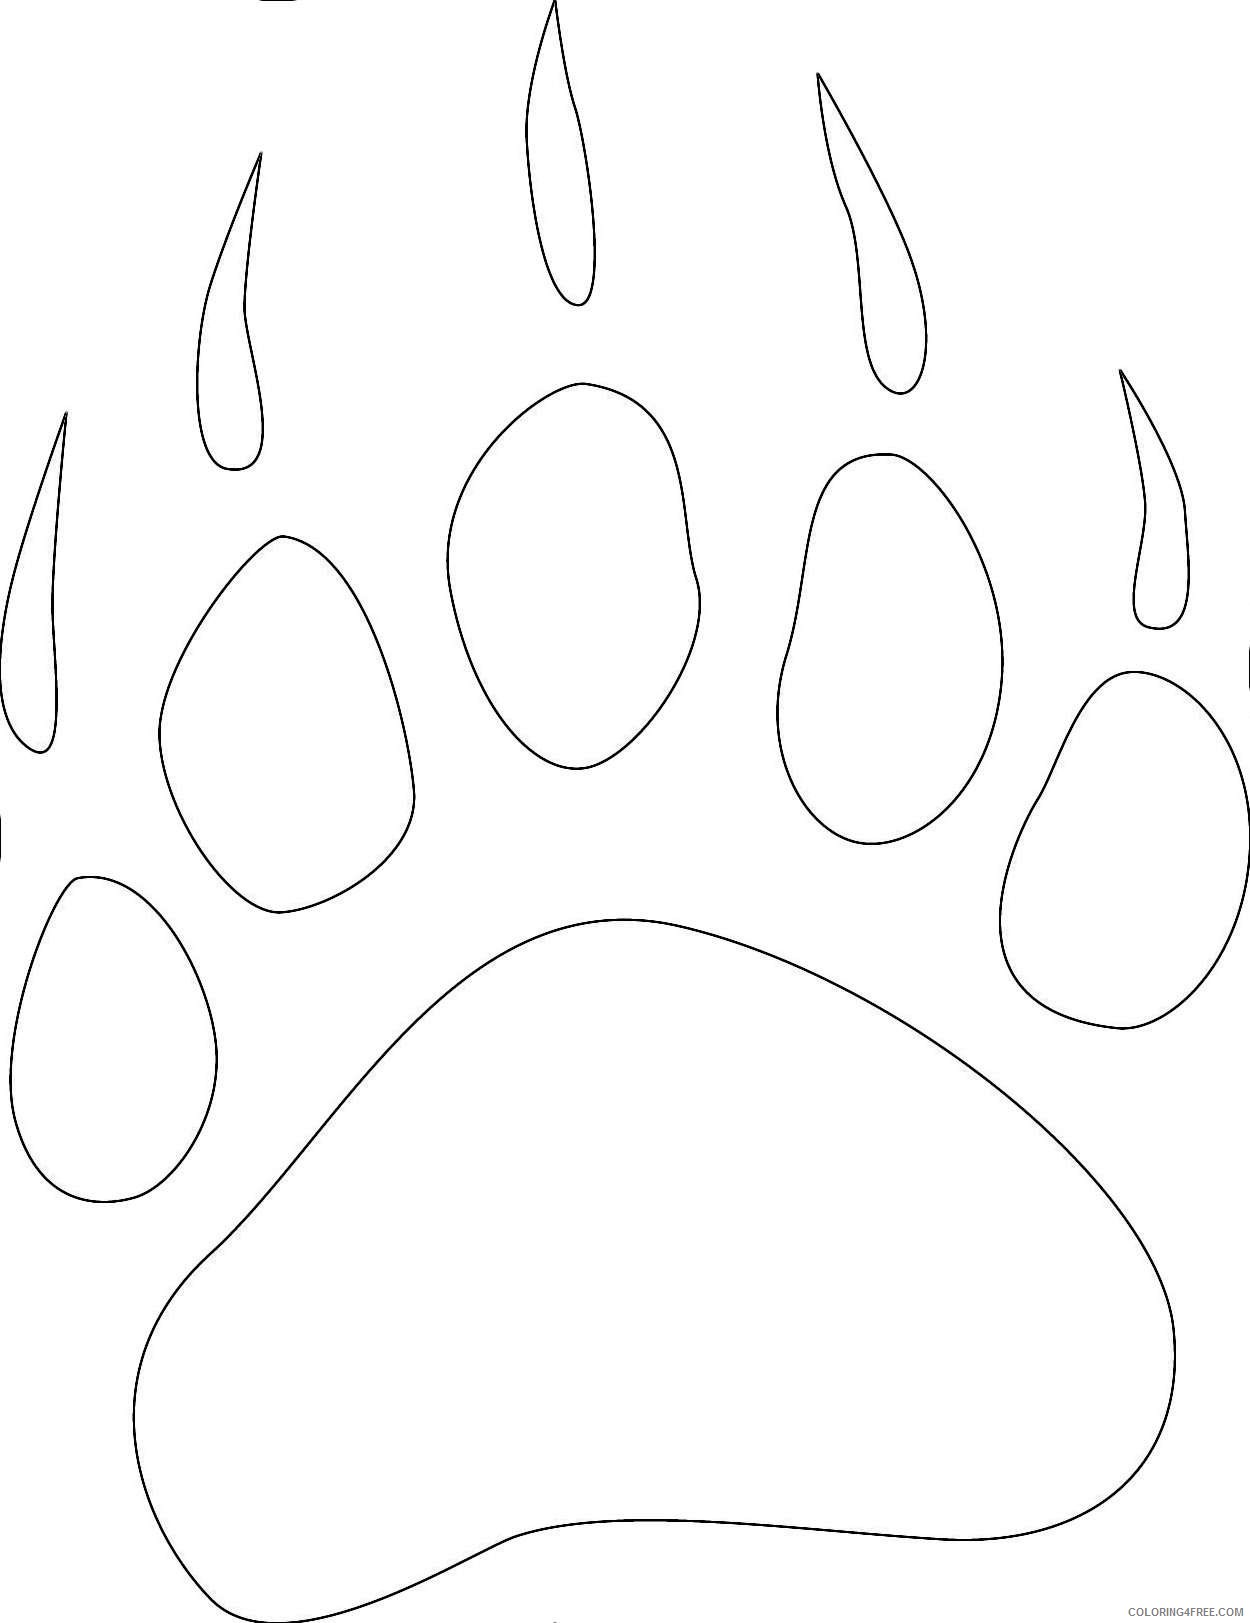 bear paw print collection b id com server 01 QNG3AA coloring